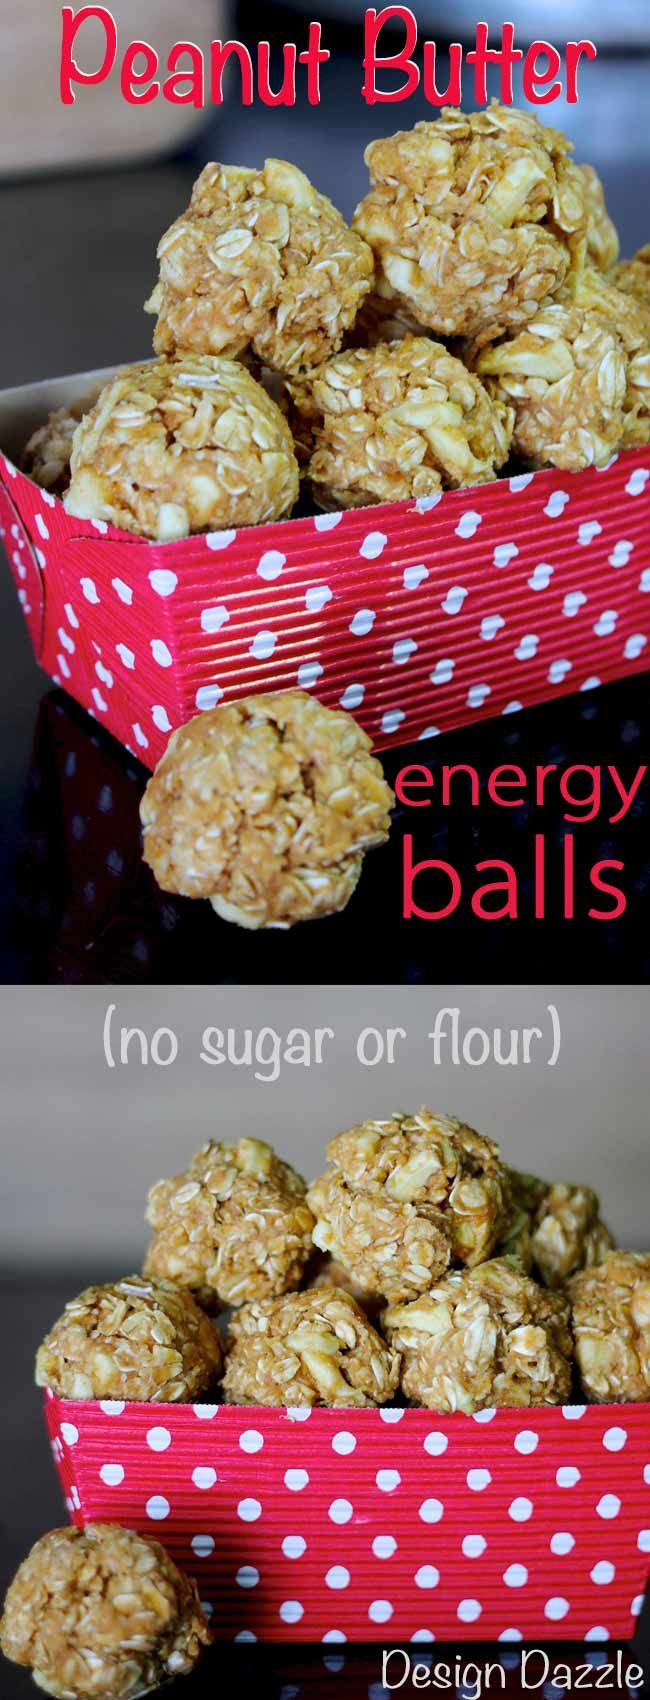 Peanut Butter Oatmeal Energy Balls are quite delicious. They are quick to make! The recipe has no flour or sugar. Perfect for healthy snacks on the go. Design Dazzle